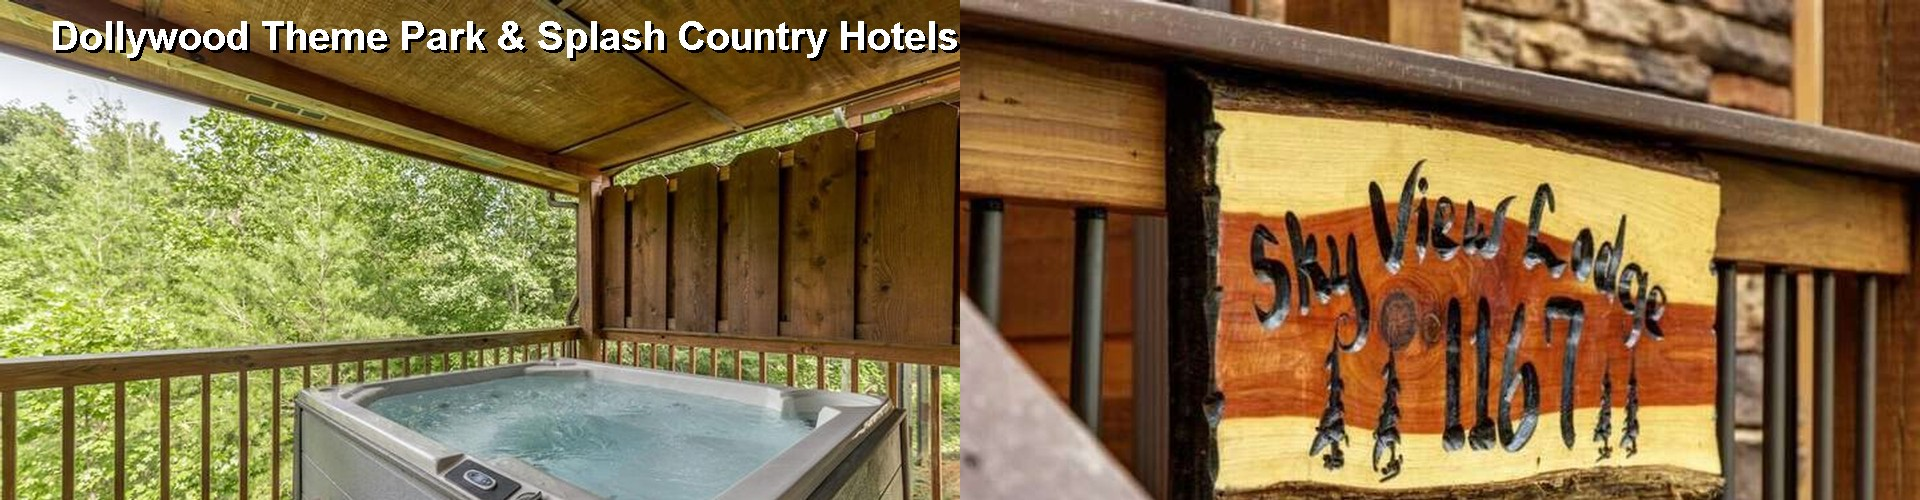 44 Hotels Near Dollywood Theme Park Amp Splash Country In